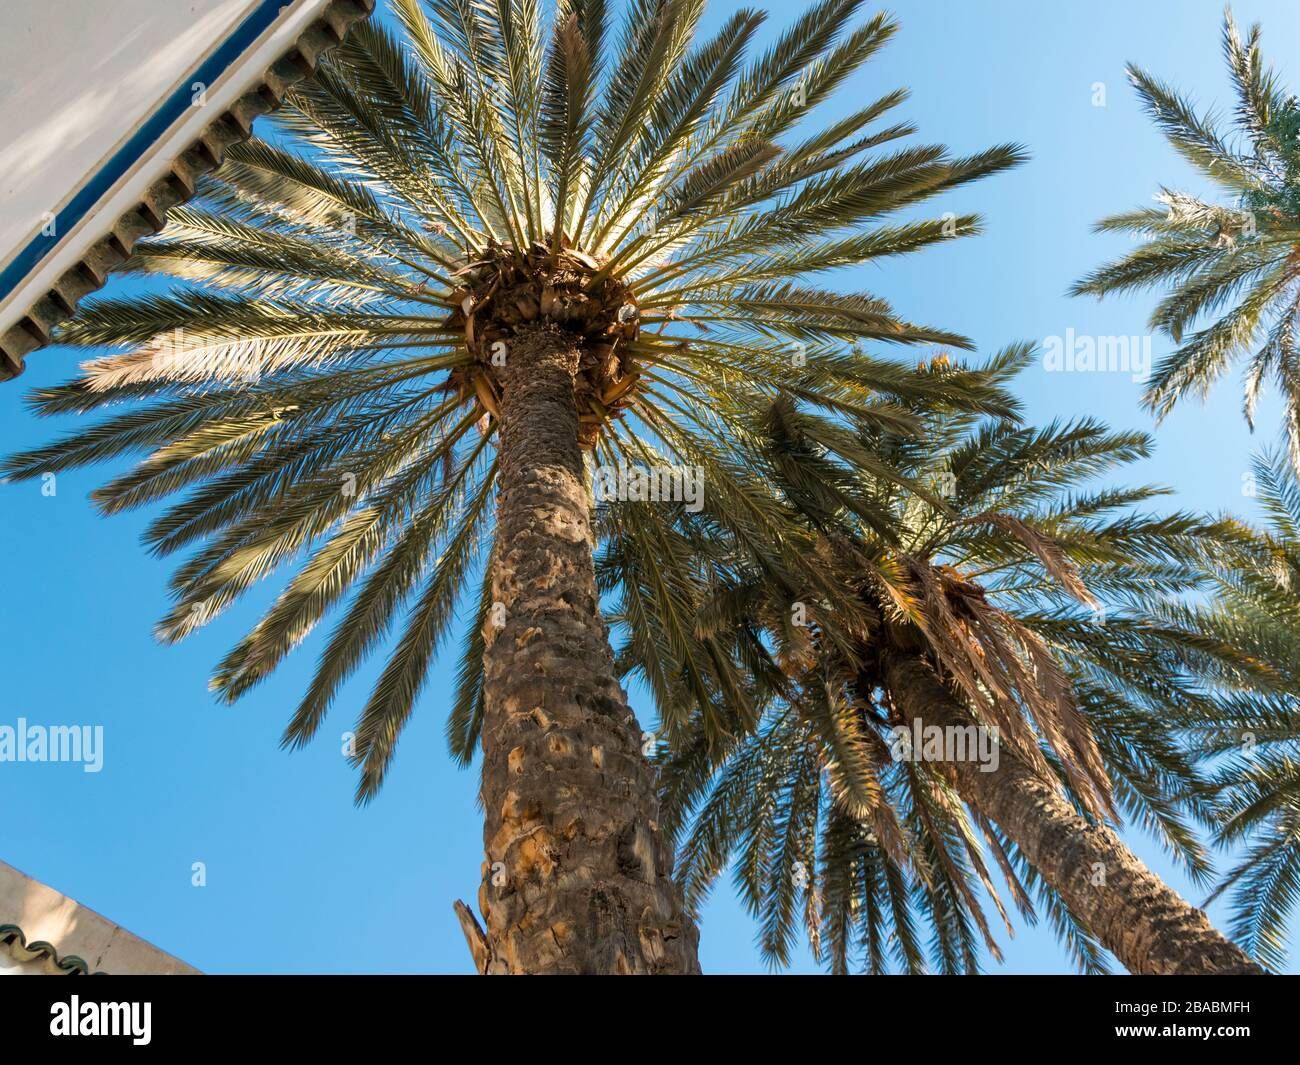 Colorful picture of a palm tree garden in Bahia Palace in Marrakech, Morocco taken in January 2020 with an angular perspective from the ground up Stock Photo